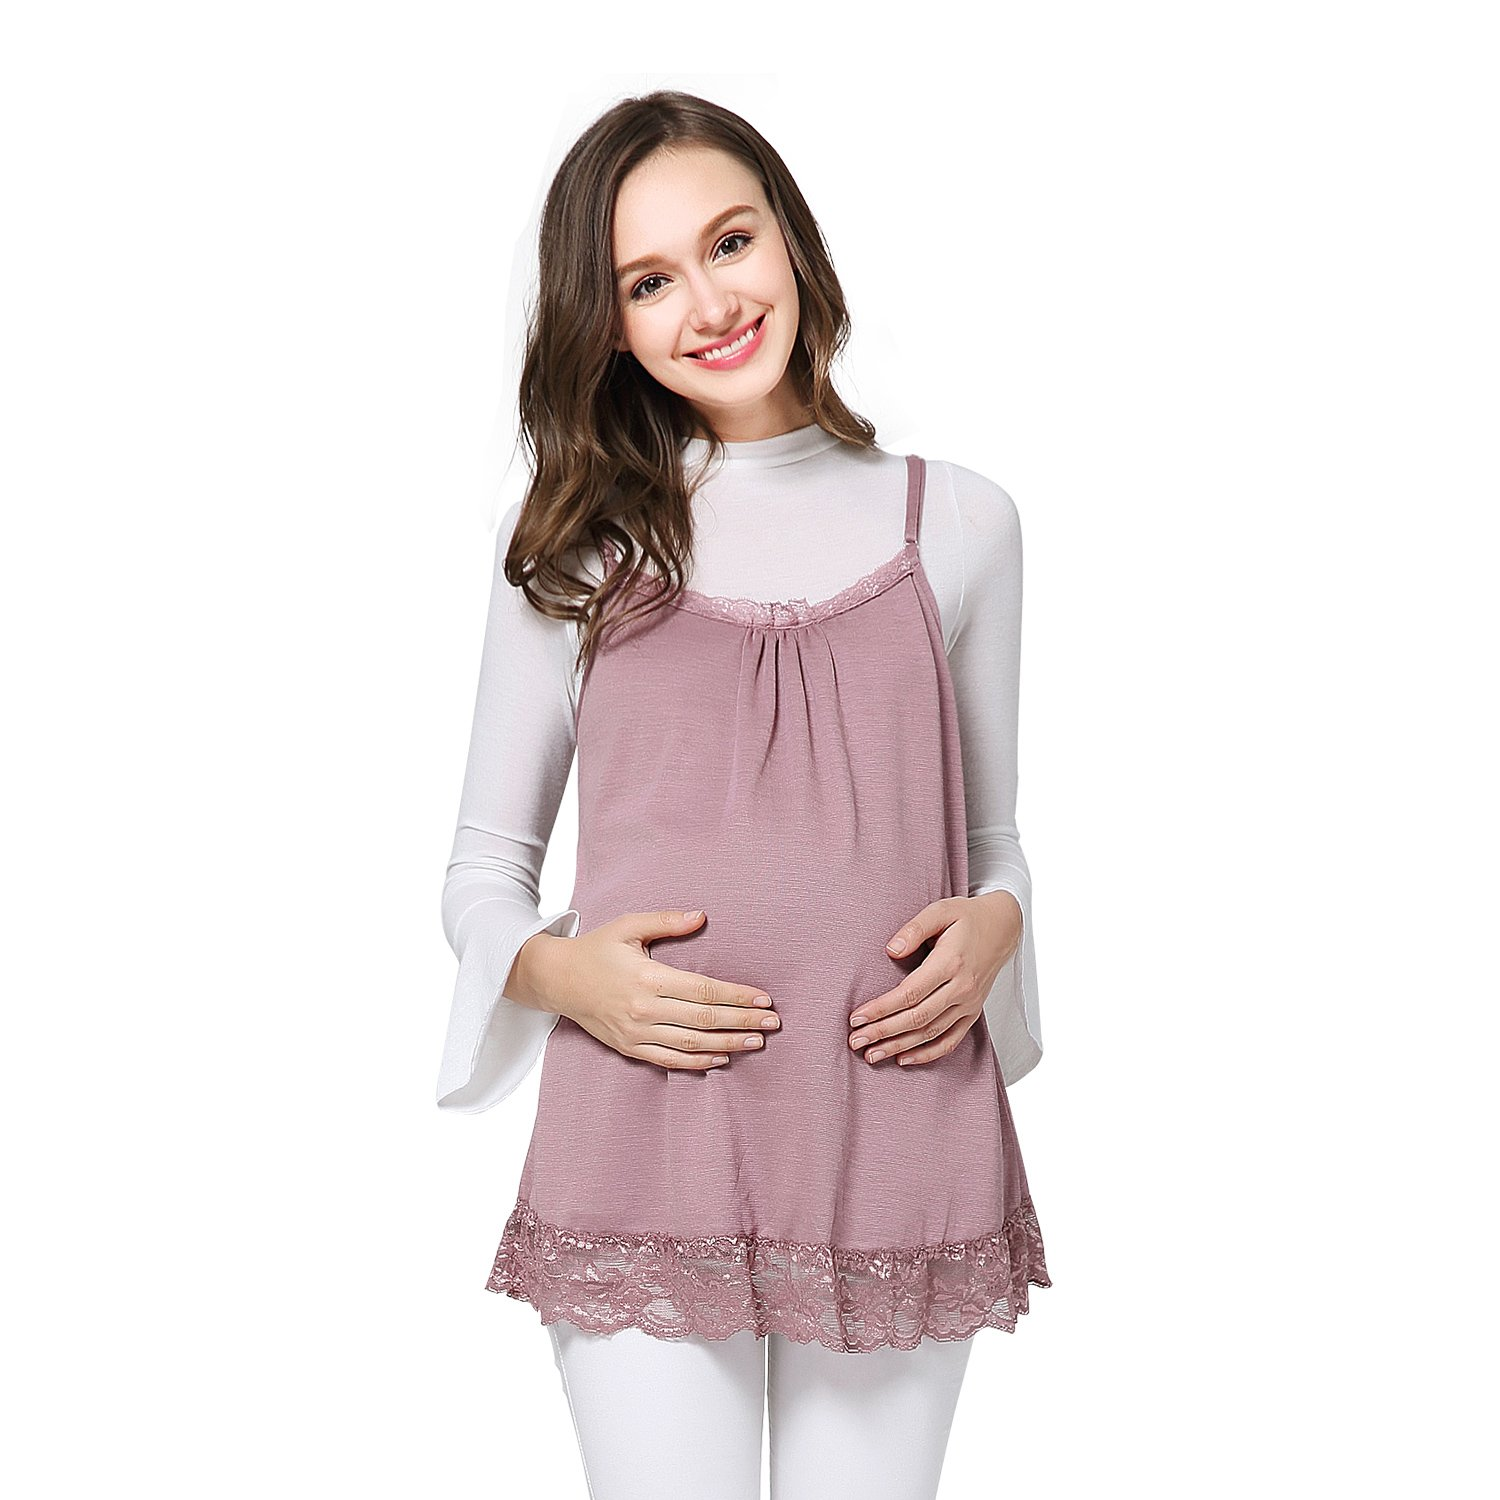 JOYNCLEON Anti-Radiation Maternity Tank Top Camisole 100% Silver Fiber Pregnancy Protection Shield Clothes Lace For Women (Medium, Pink)